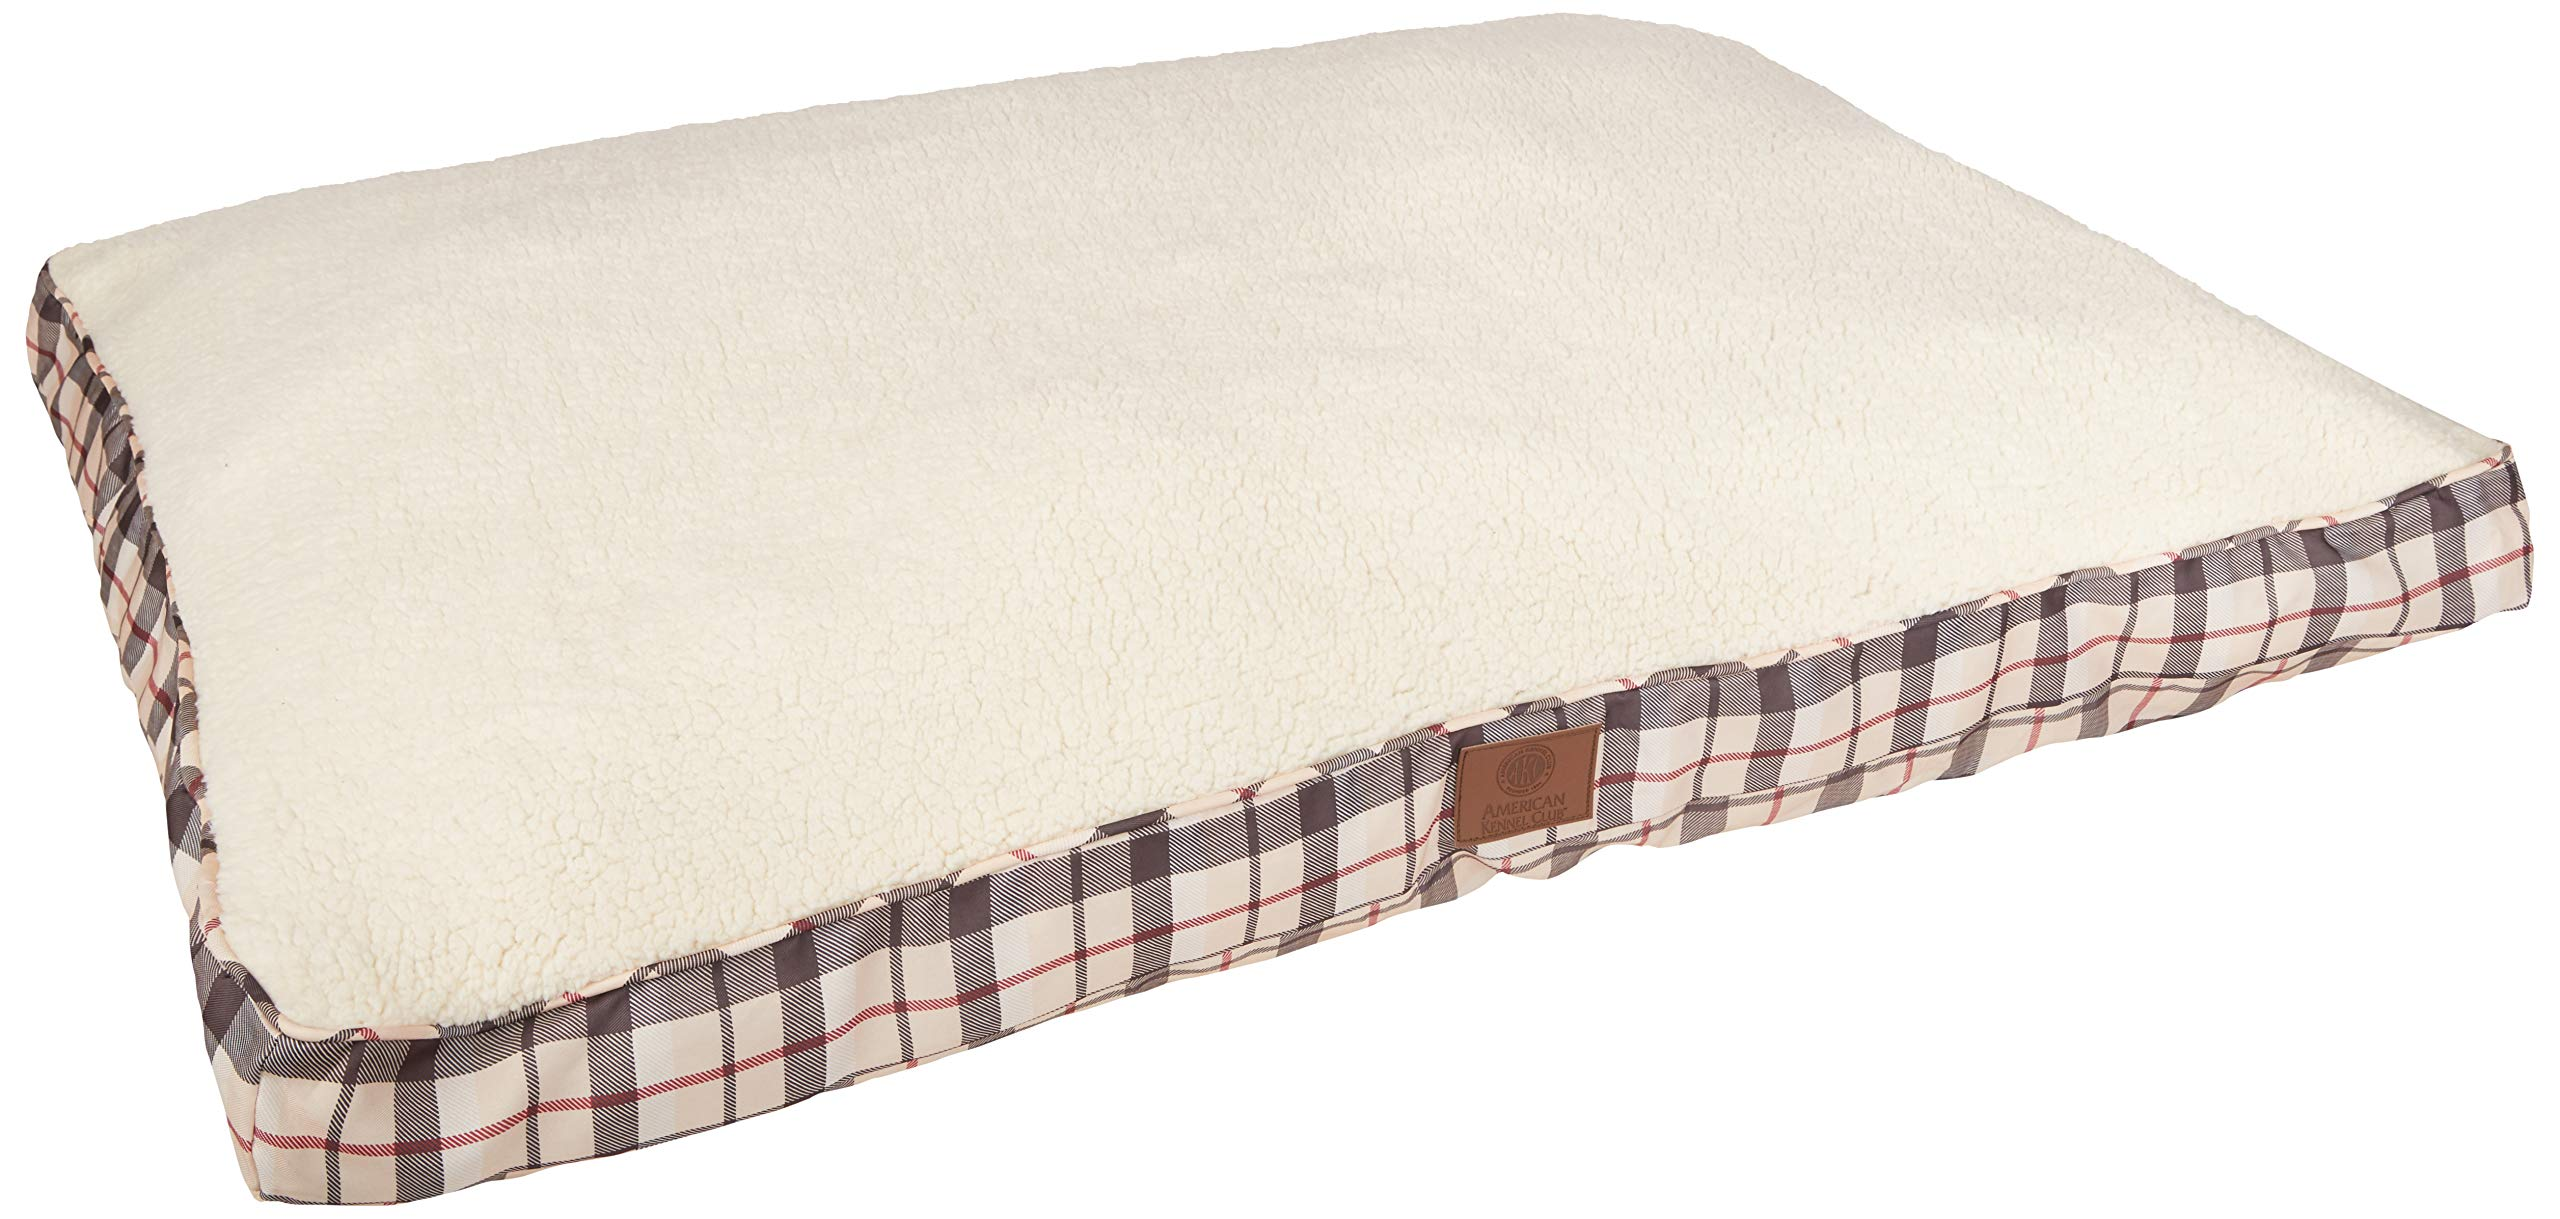 American Kennel Club AKC9261TAN Plaid Bed Pet Gusset Bed, Tan, X-Large